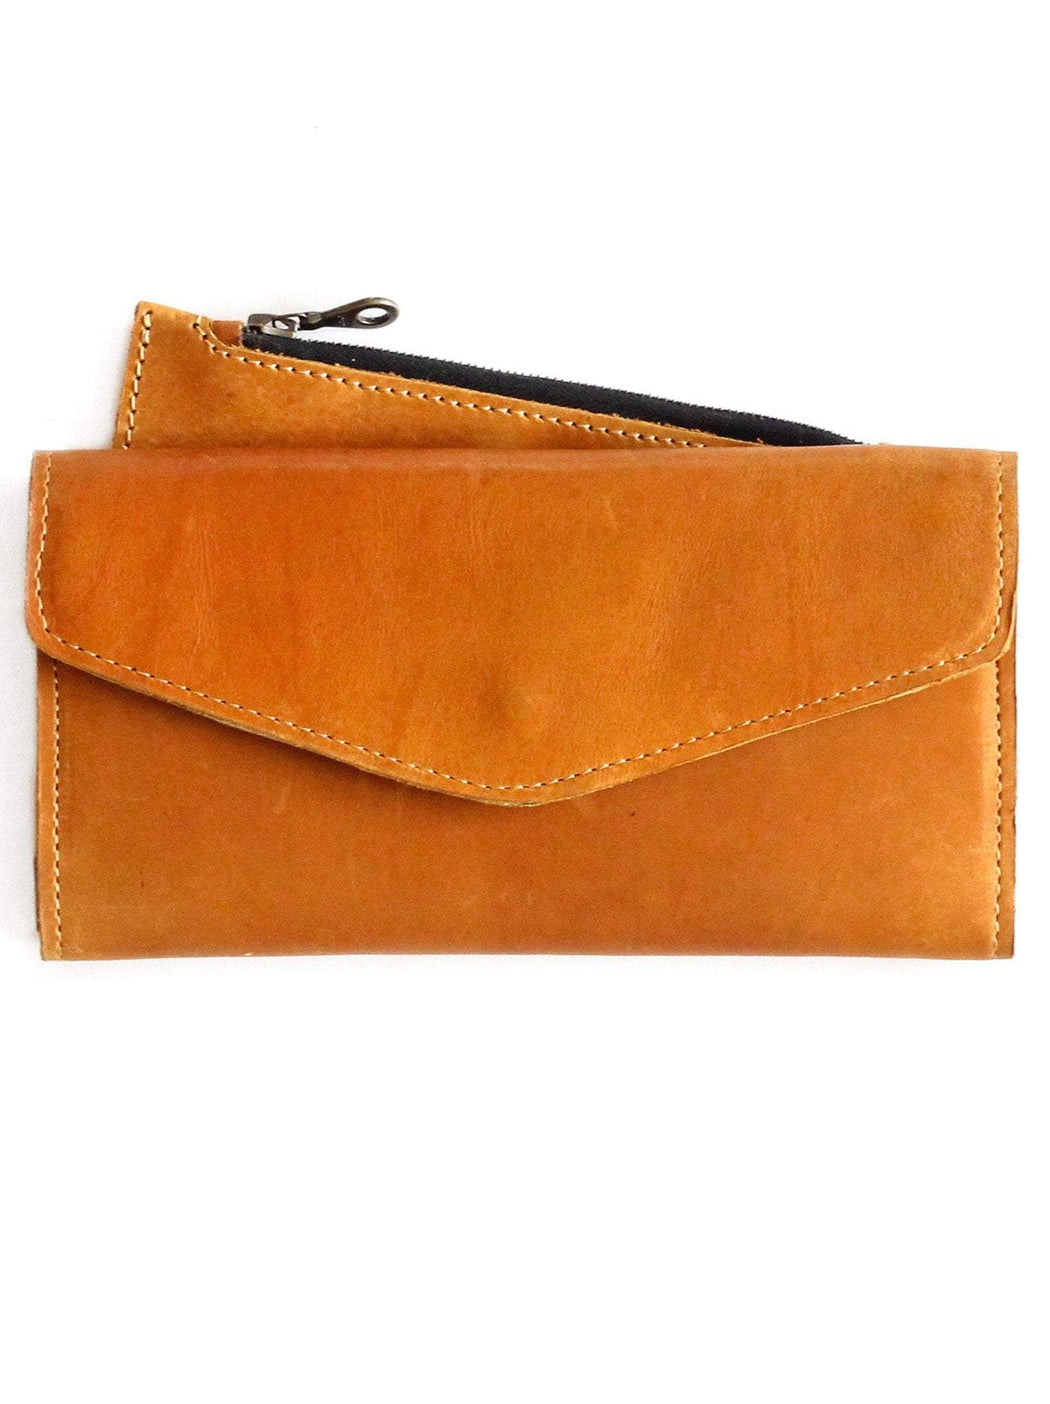 Hailu Leather Wallet - Cognac, fashionABLE - Gingerly Witty